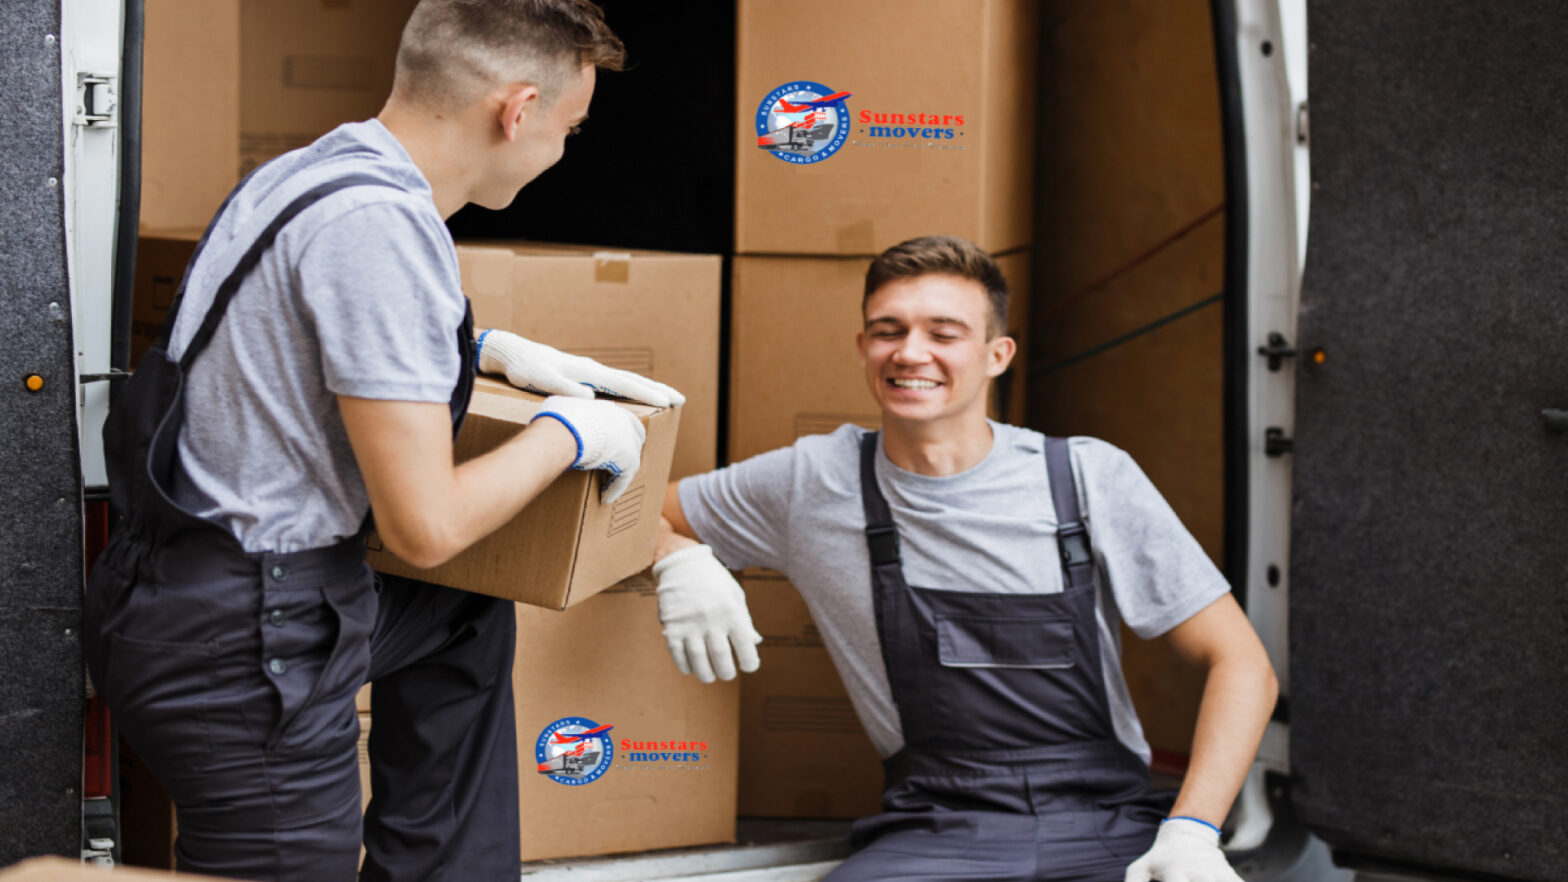 Best Movers In Abudhabi at sunstars movers